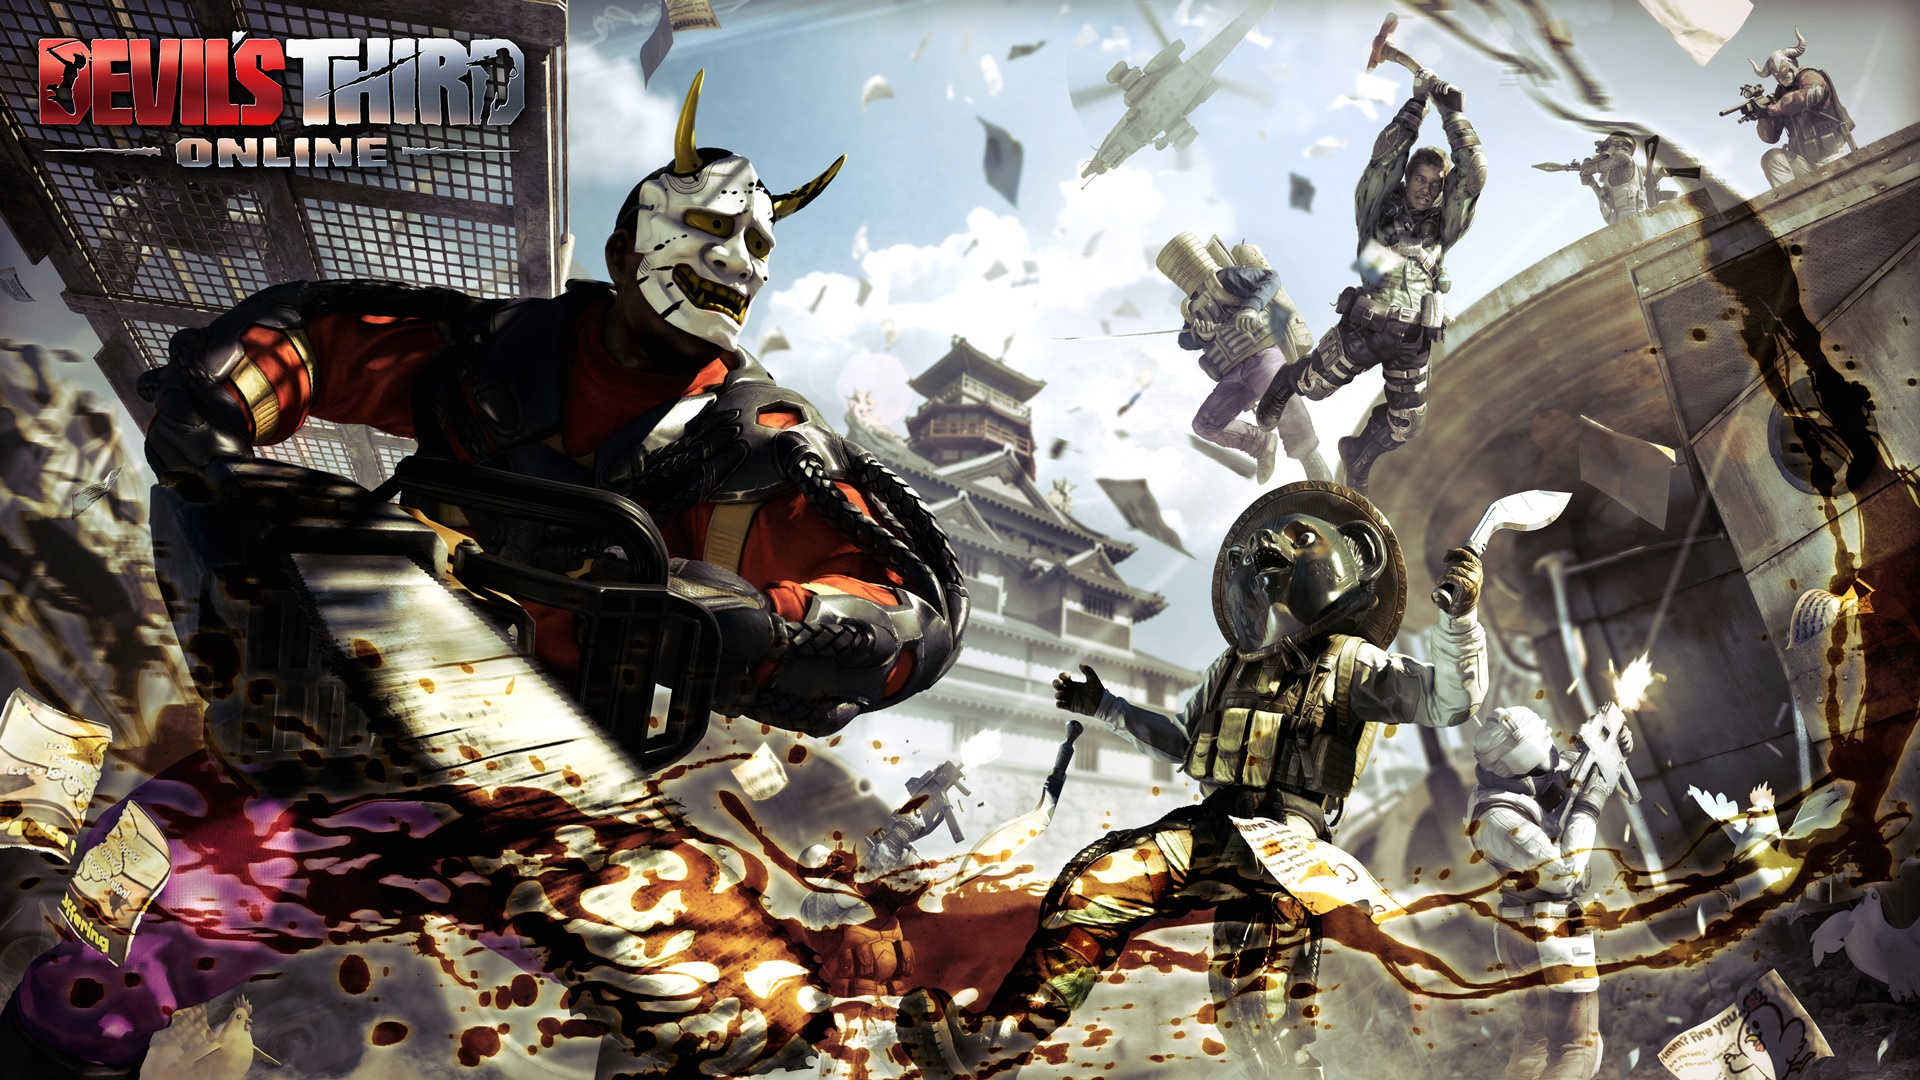 Devil S Third Online Para Pc Se Estrena En Japon El 8 De Junio